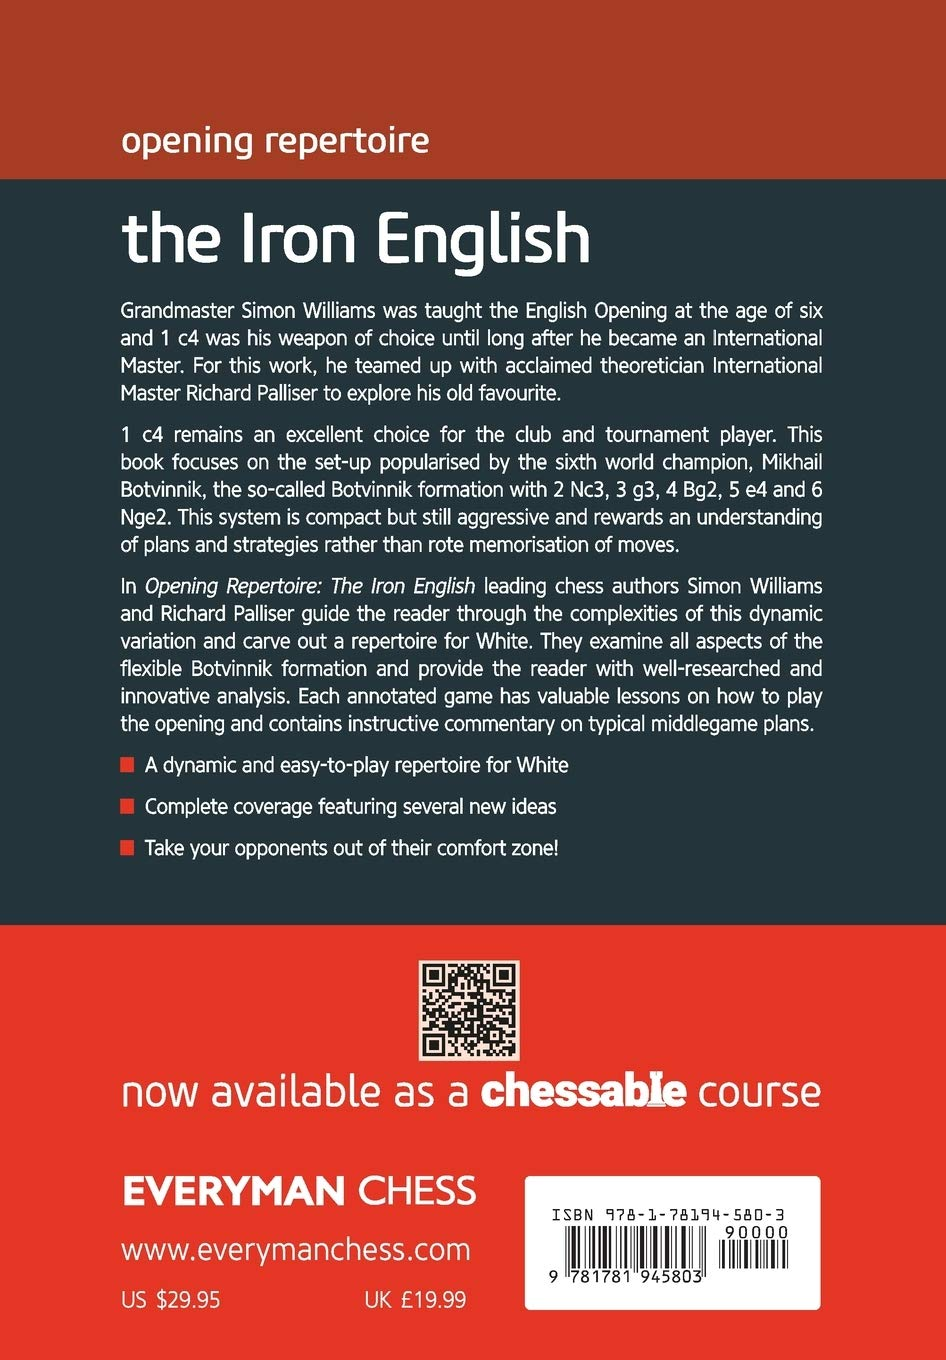 The Iron English, Richard Palliser & Simon Williams, Everyman Chess, 2020, ISBN-13 : 978-1781945803